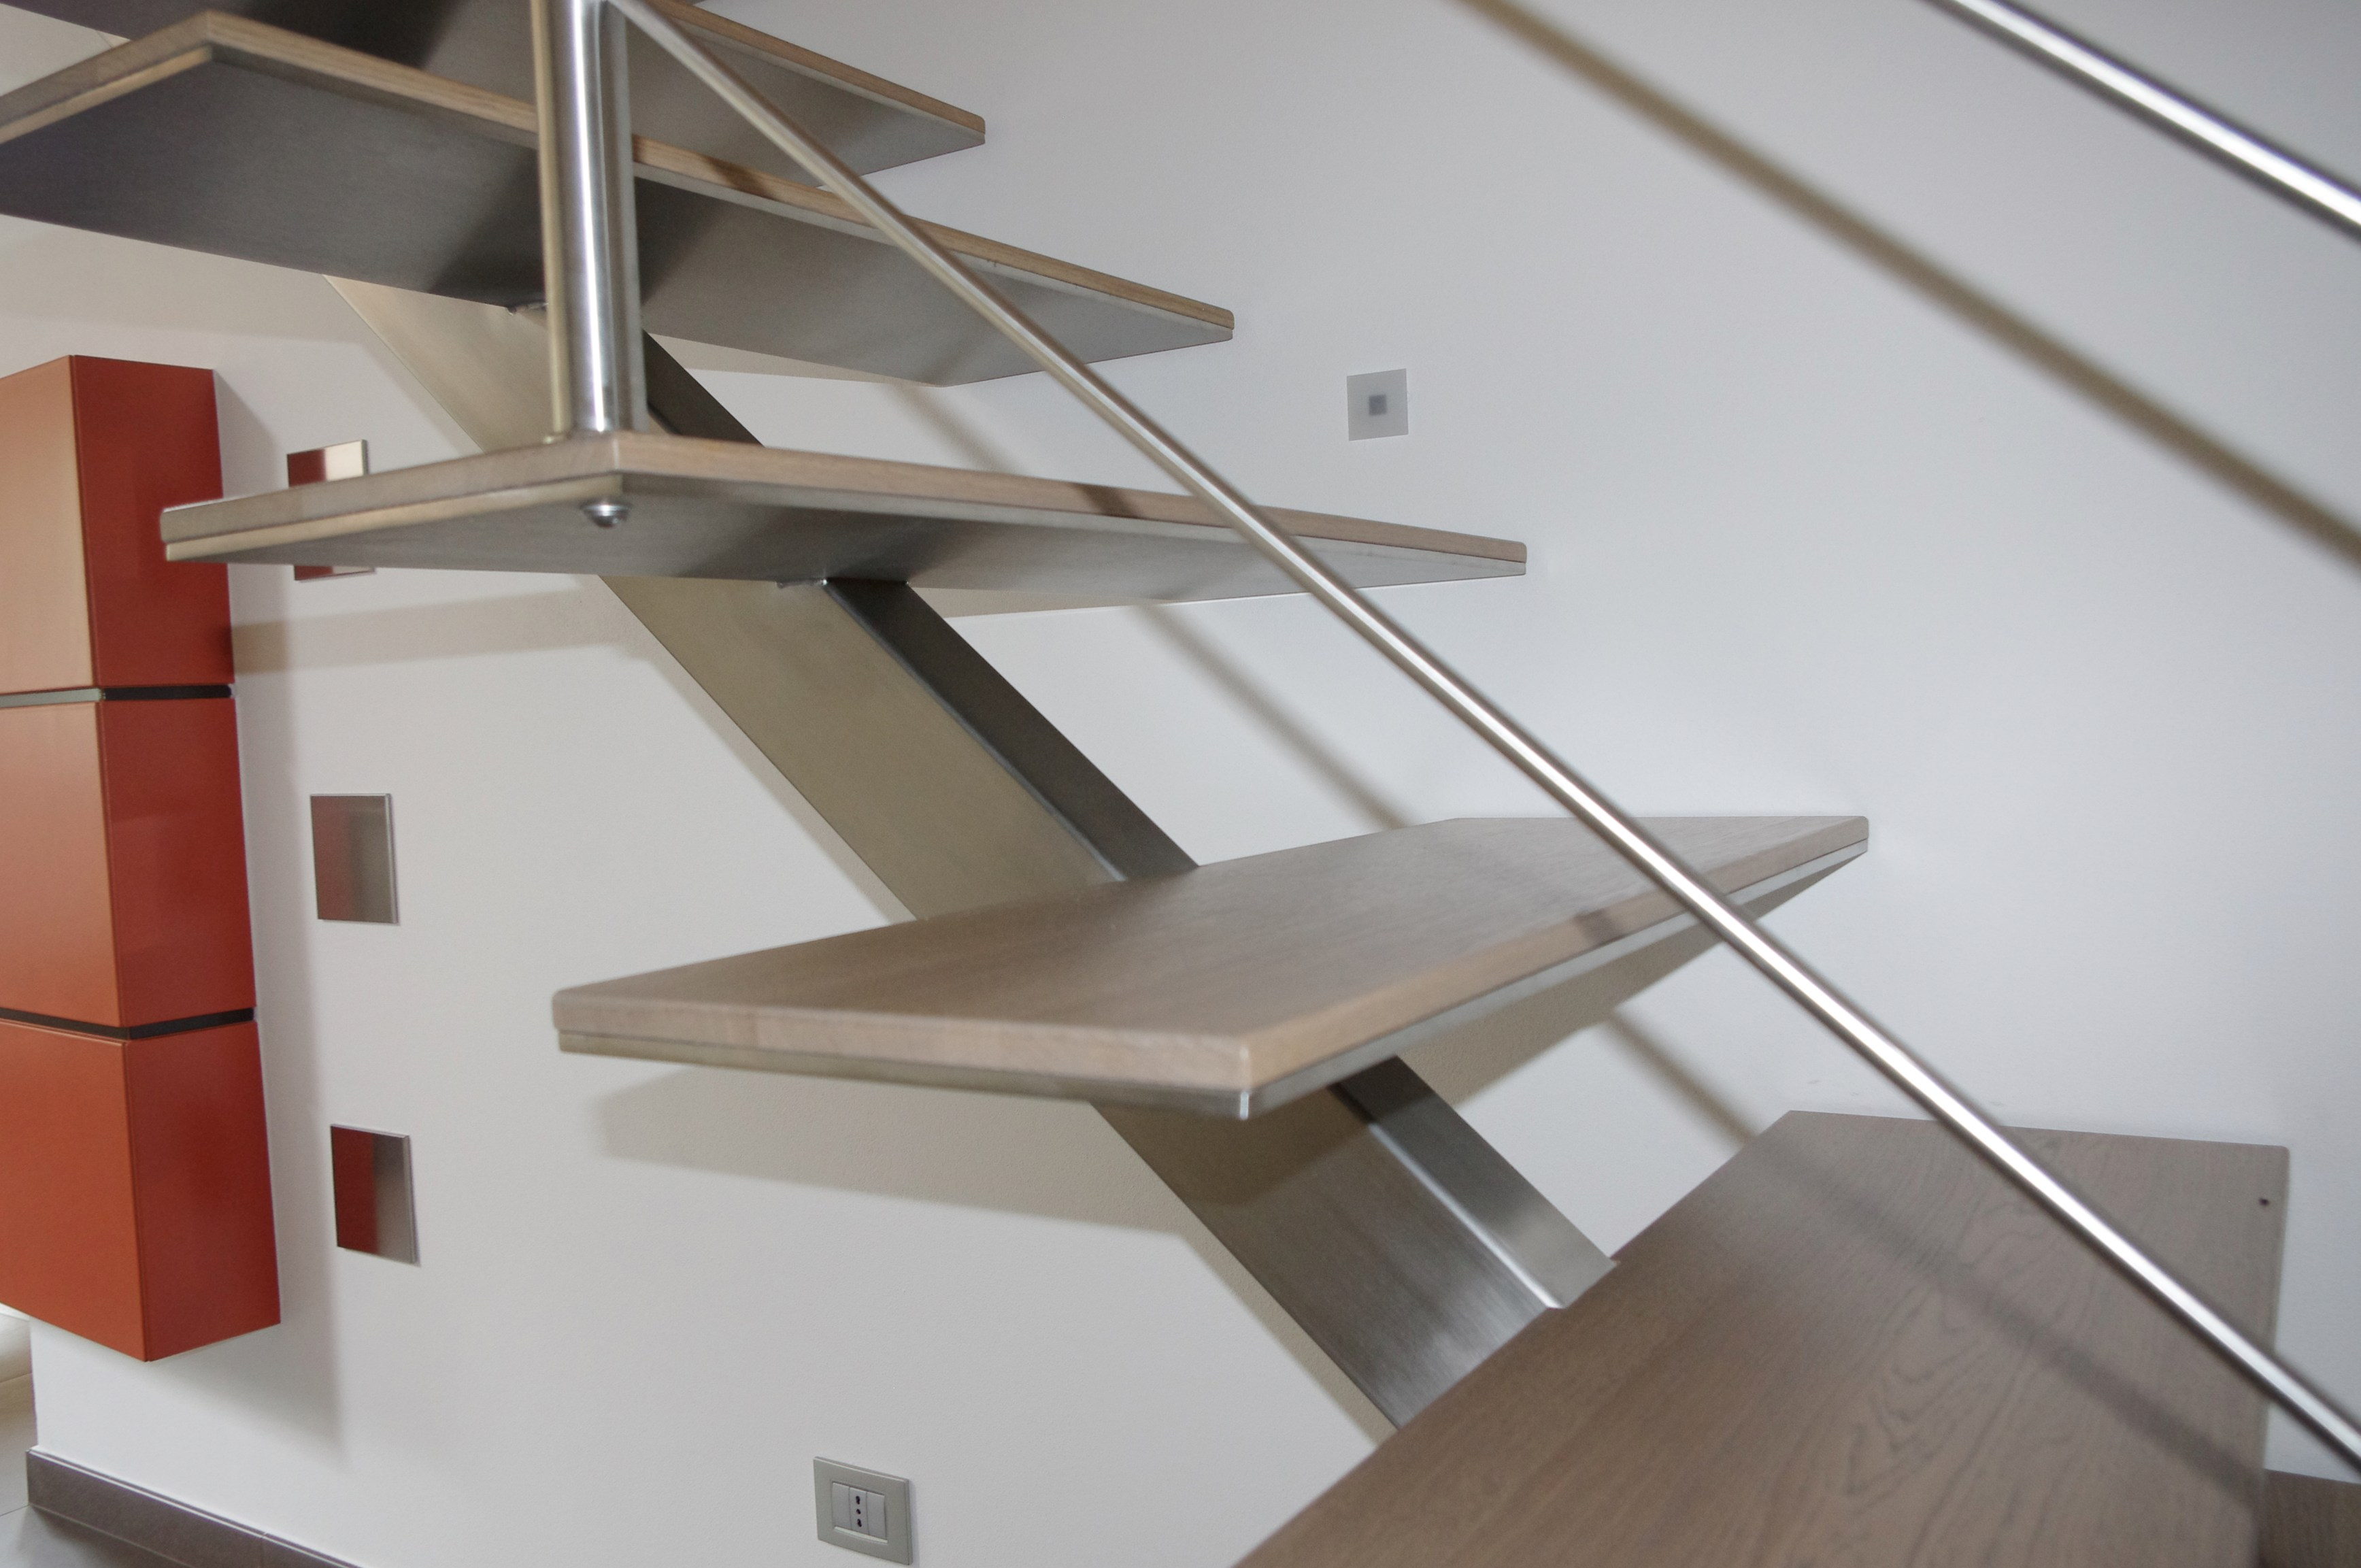 STAIRCASE WITH A METAL